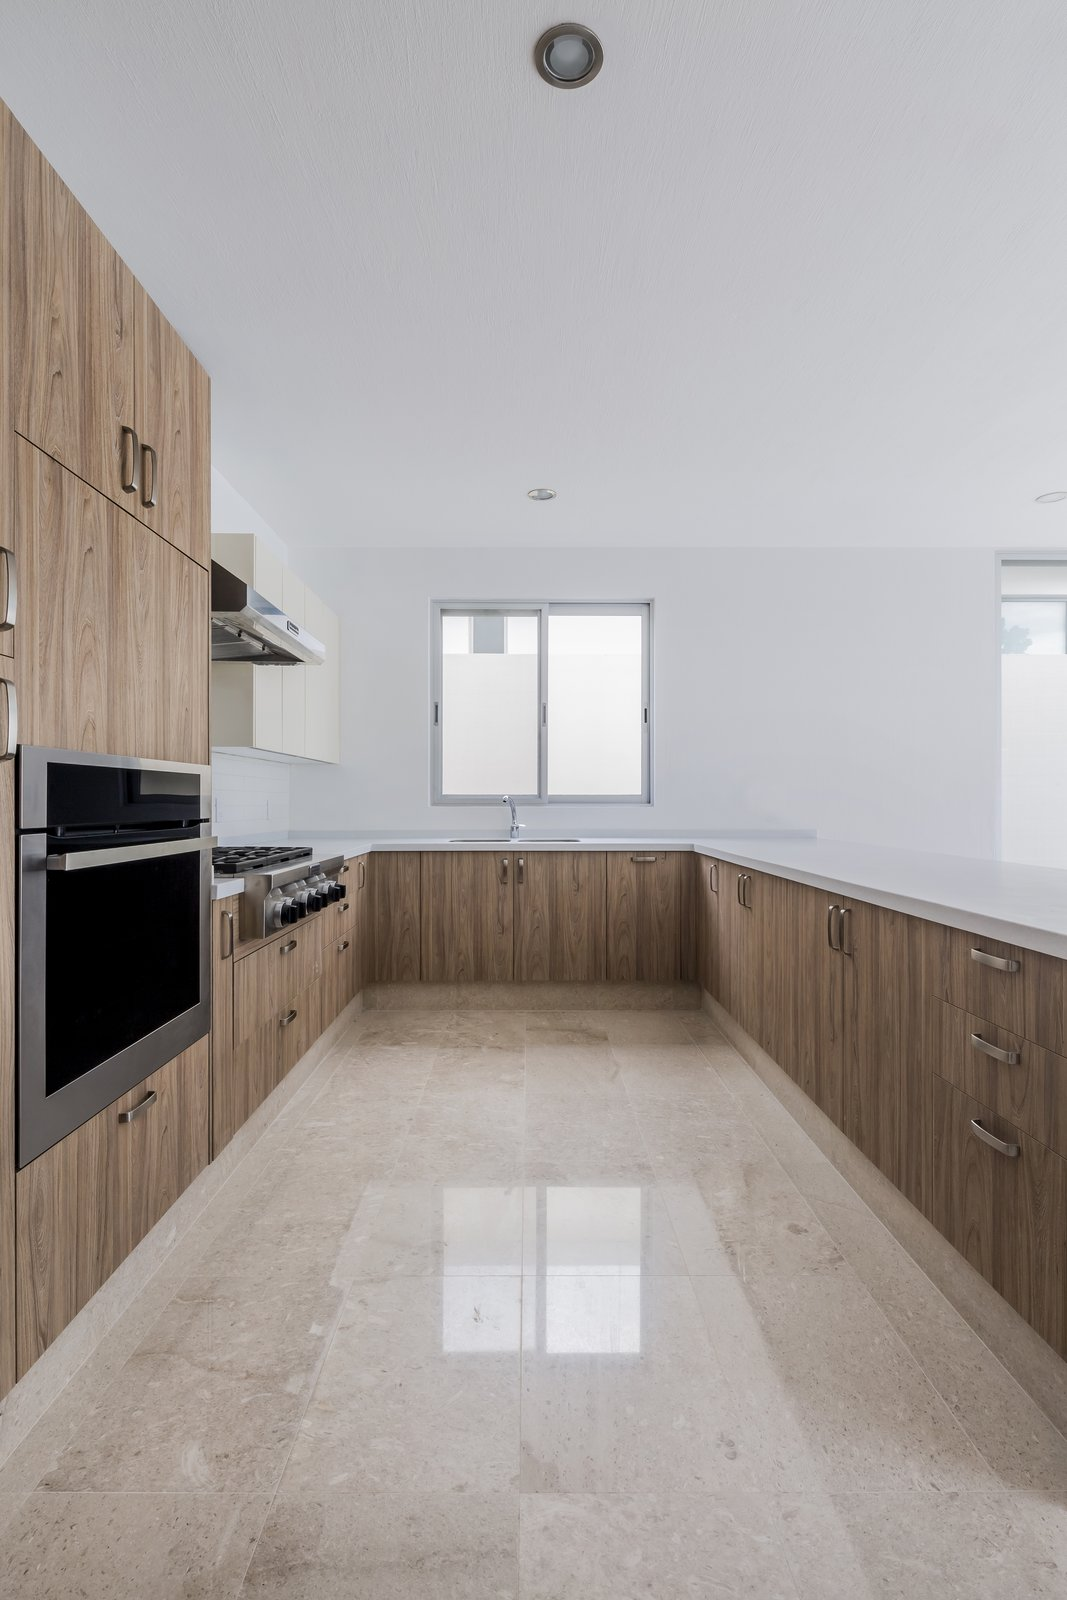 Kitchen, Wood Cabinet, Wood Counter, Marble Floor, Quartzite Counter, Ceramic Tile Backsplashe, Ceiling Lighting, and Wall Oven  CASA VALLE by Sergio Villalobos